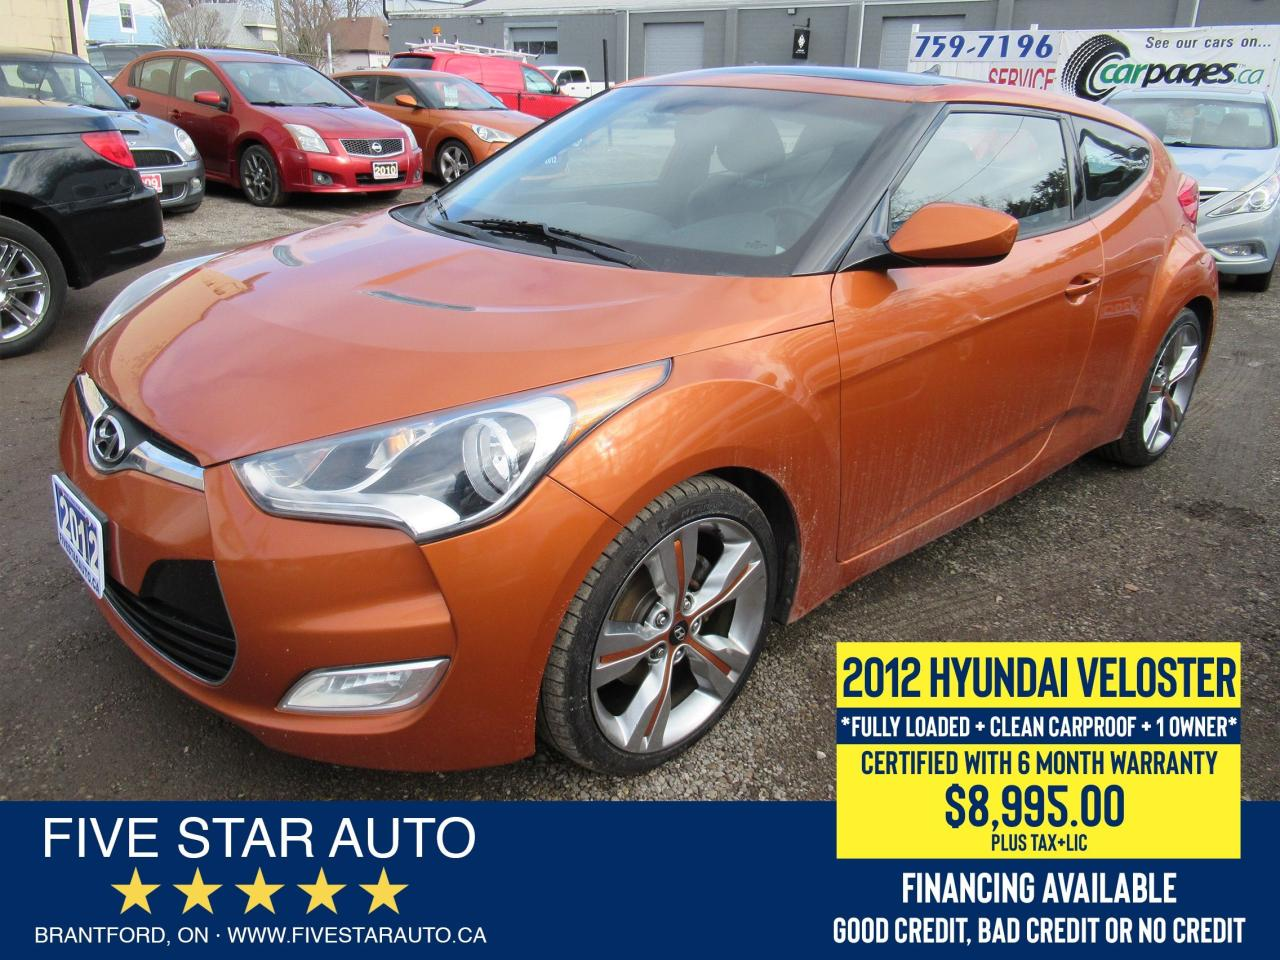 2012 Hyundai Veloster Tech *Clean Carfax* Certified + 6 Month Warranty